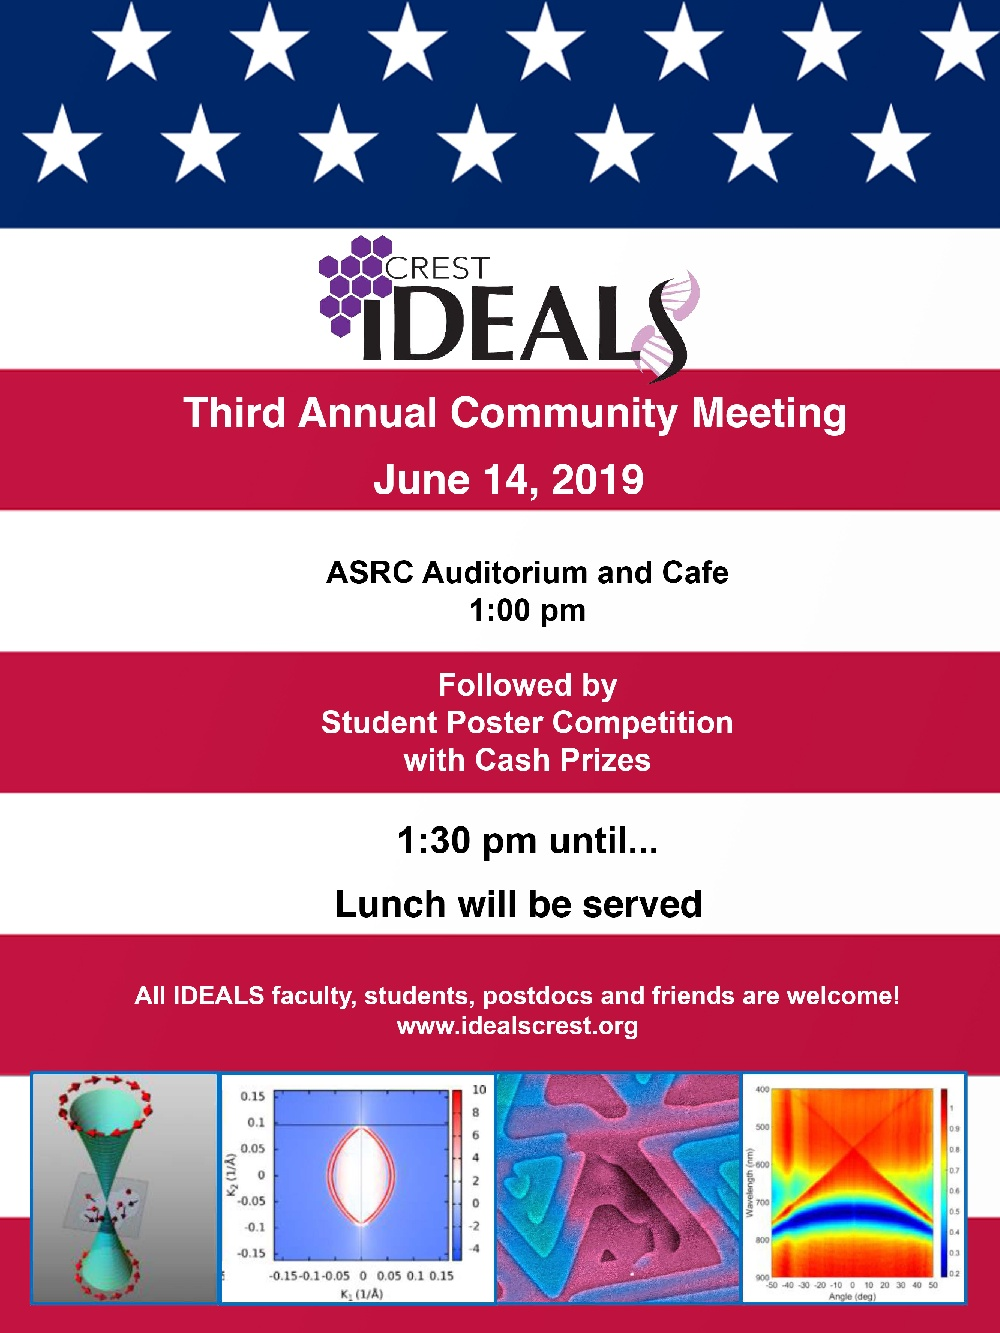 IDEALS Third Annual Community Meeting & Poster Competition